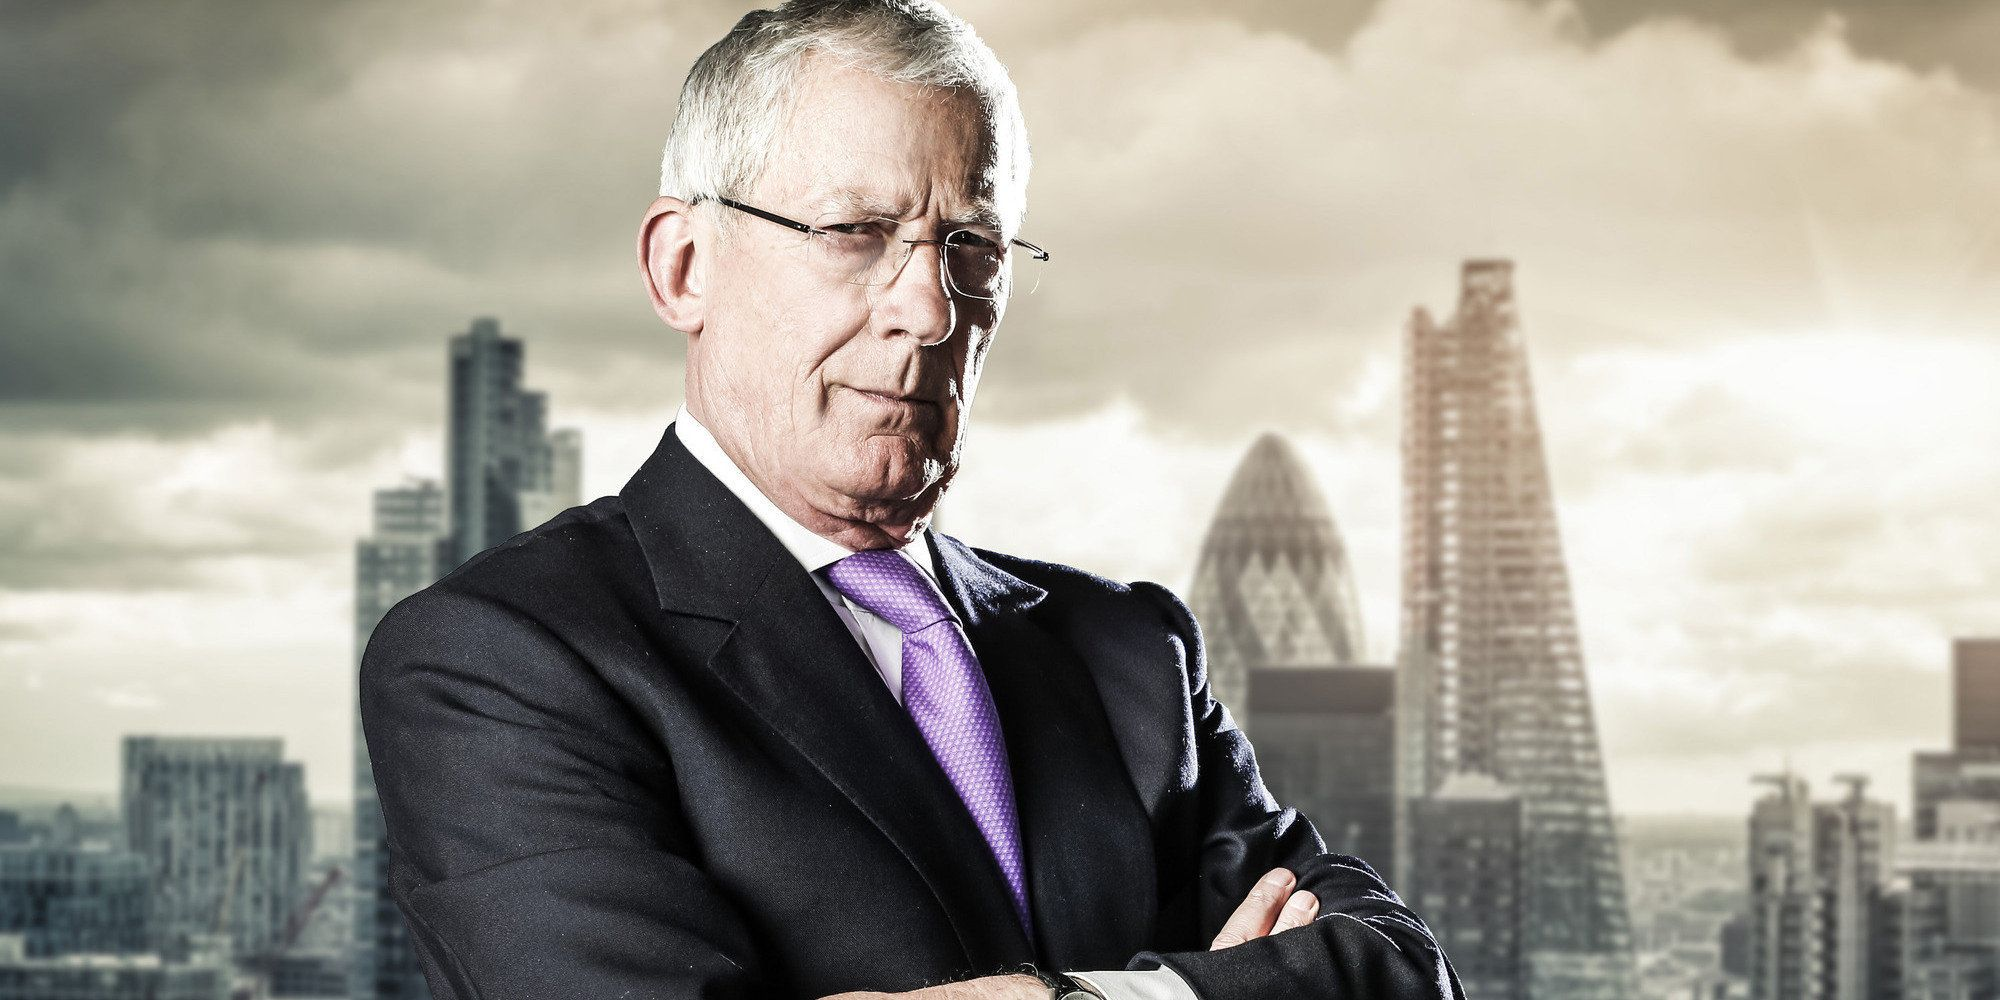 Nick Hewer Makes Sensational Claim About How 'The Apprentice' Stars Are Really